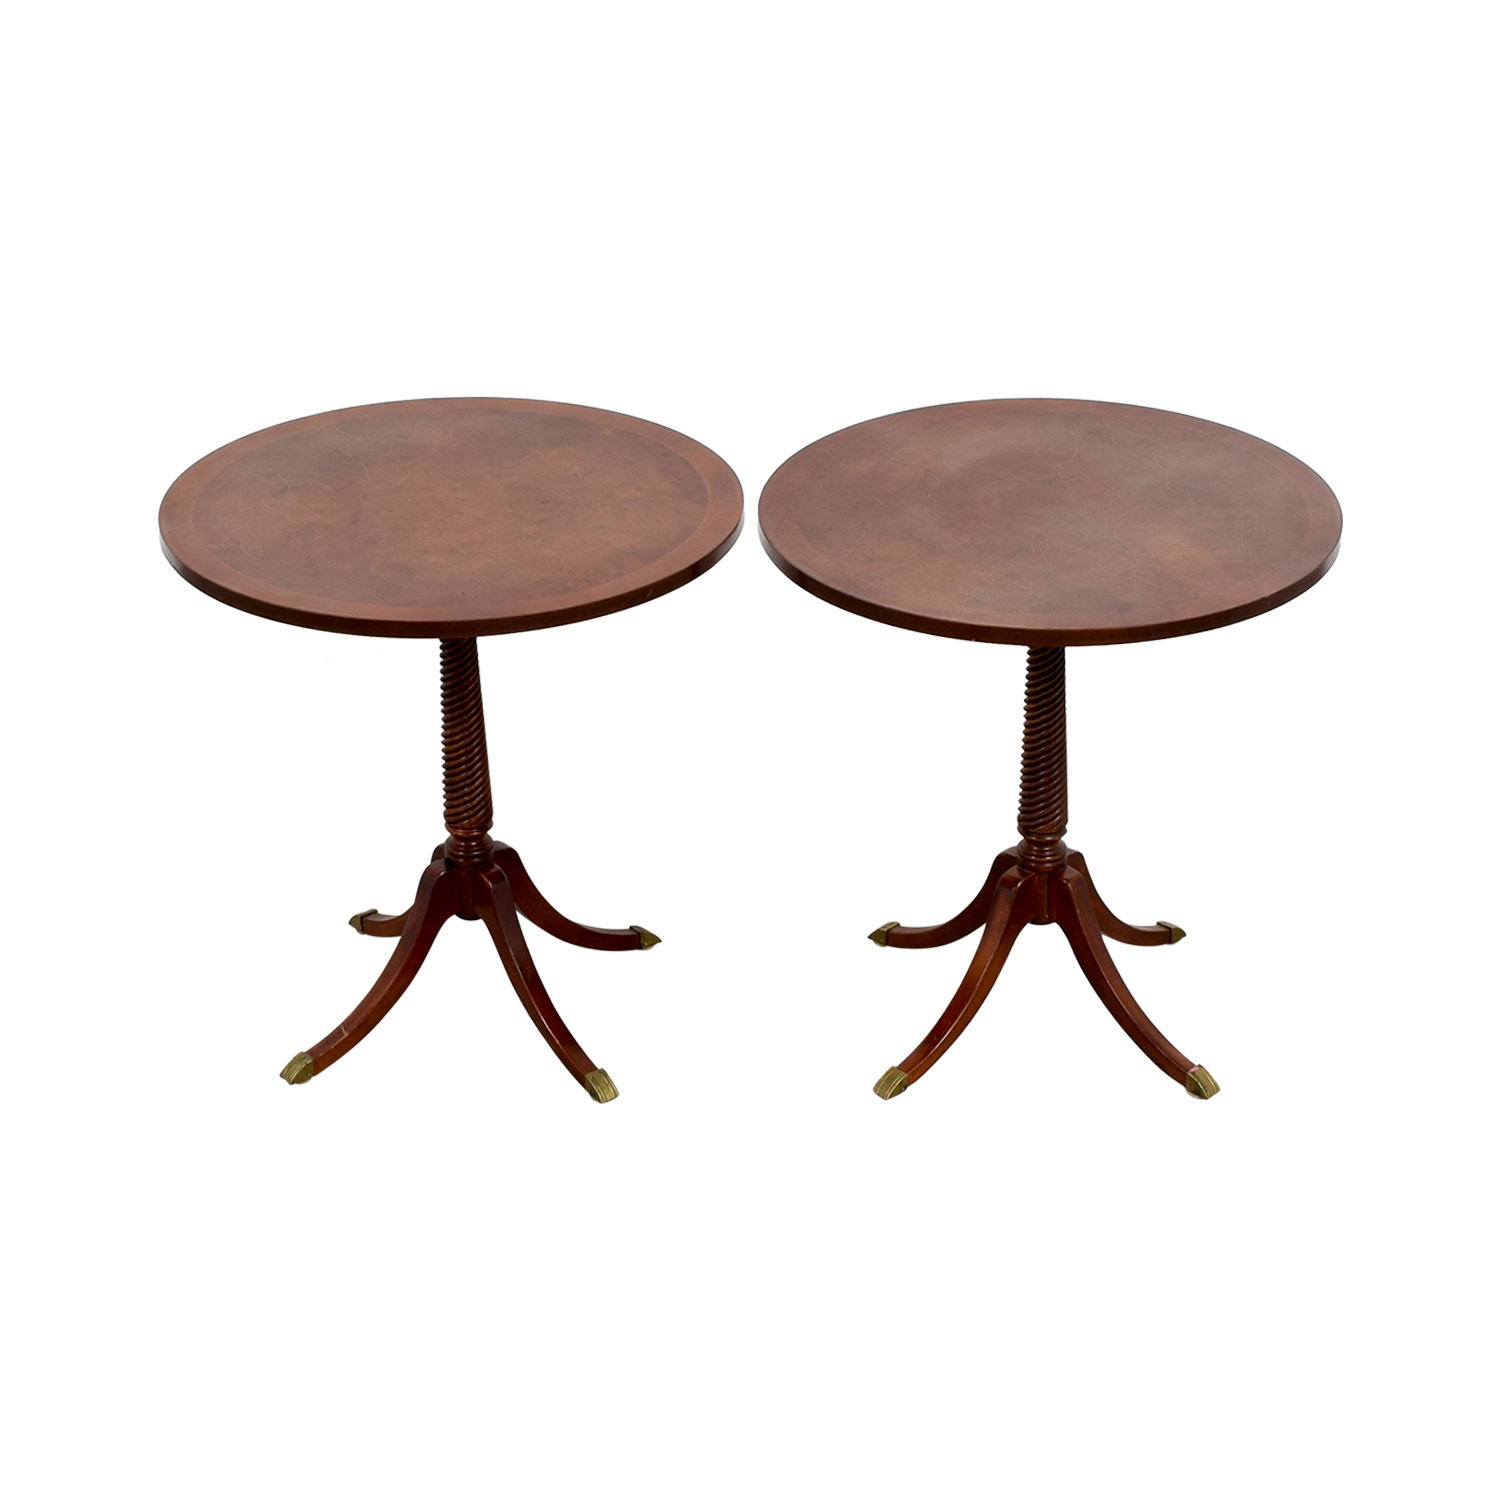 Furniture Masters Round Wood End Tables sale